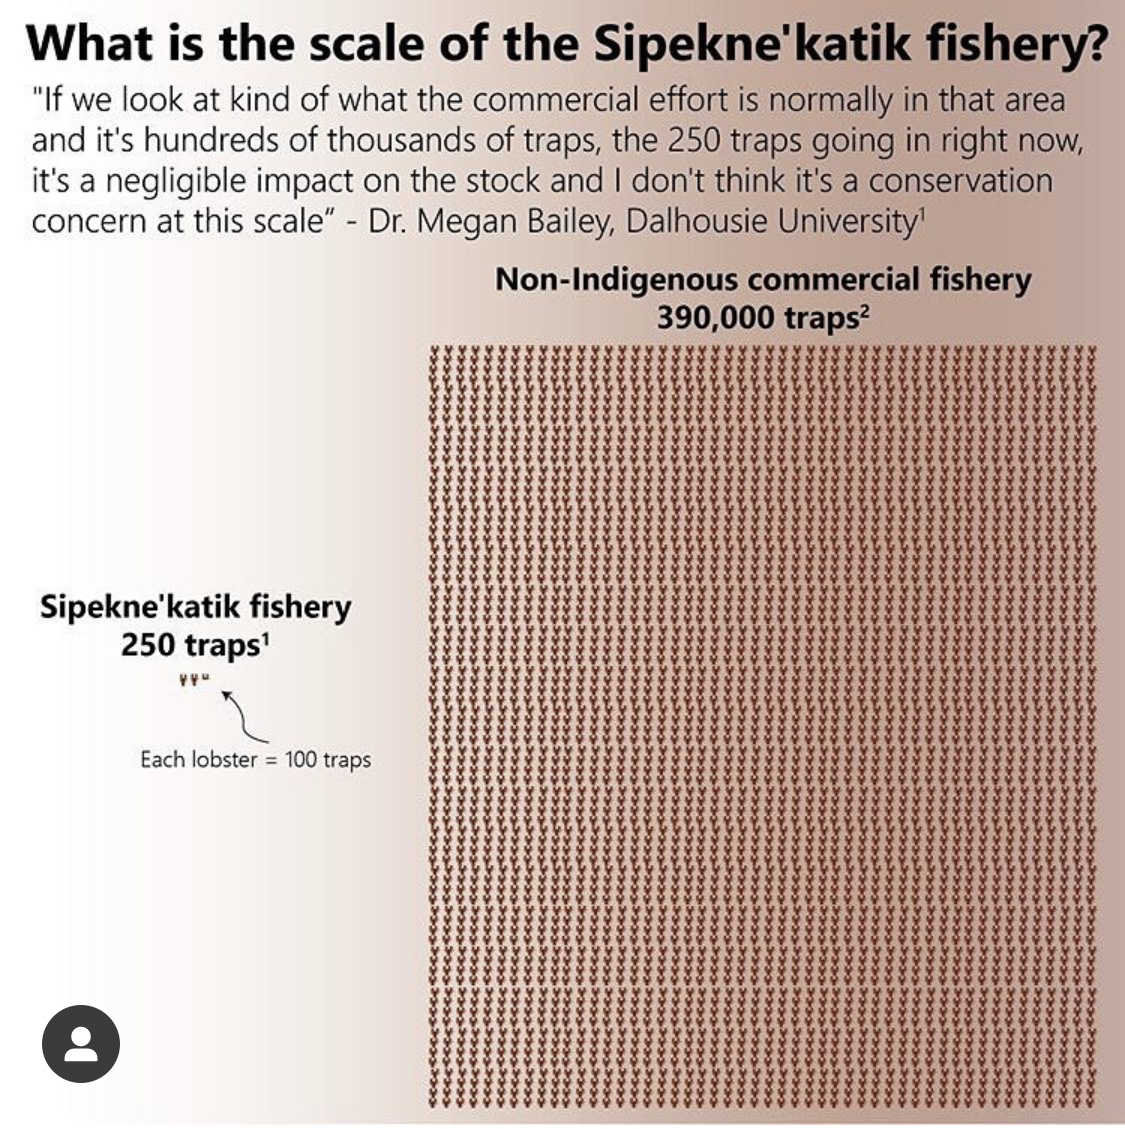 An info graph comparing the fishing traps of the indigenous fishermen versus commercial fishing. There are 250 traps used by indigenous fishermen, 390,000 used by commercial fishermen